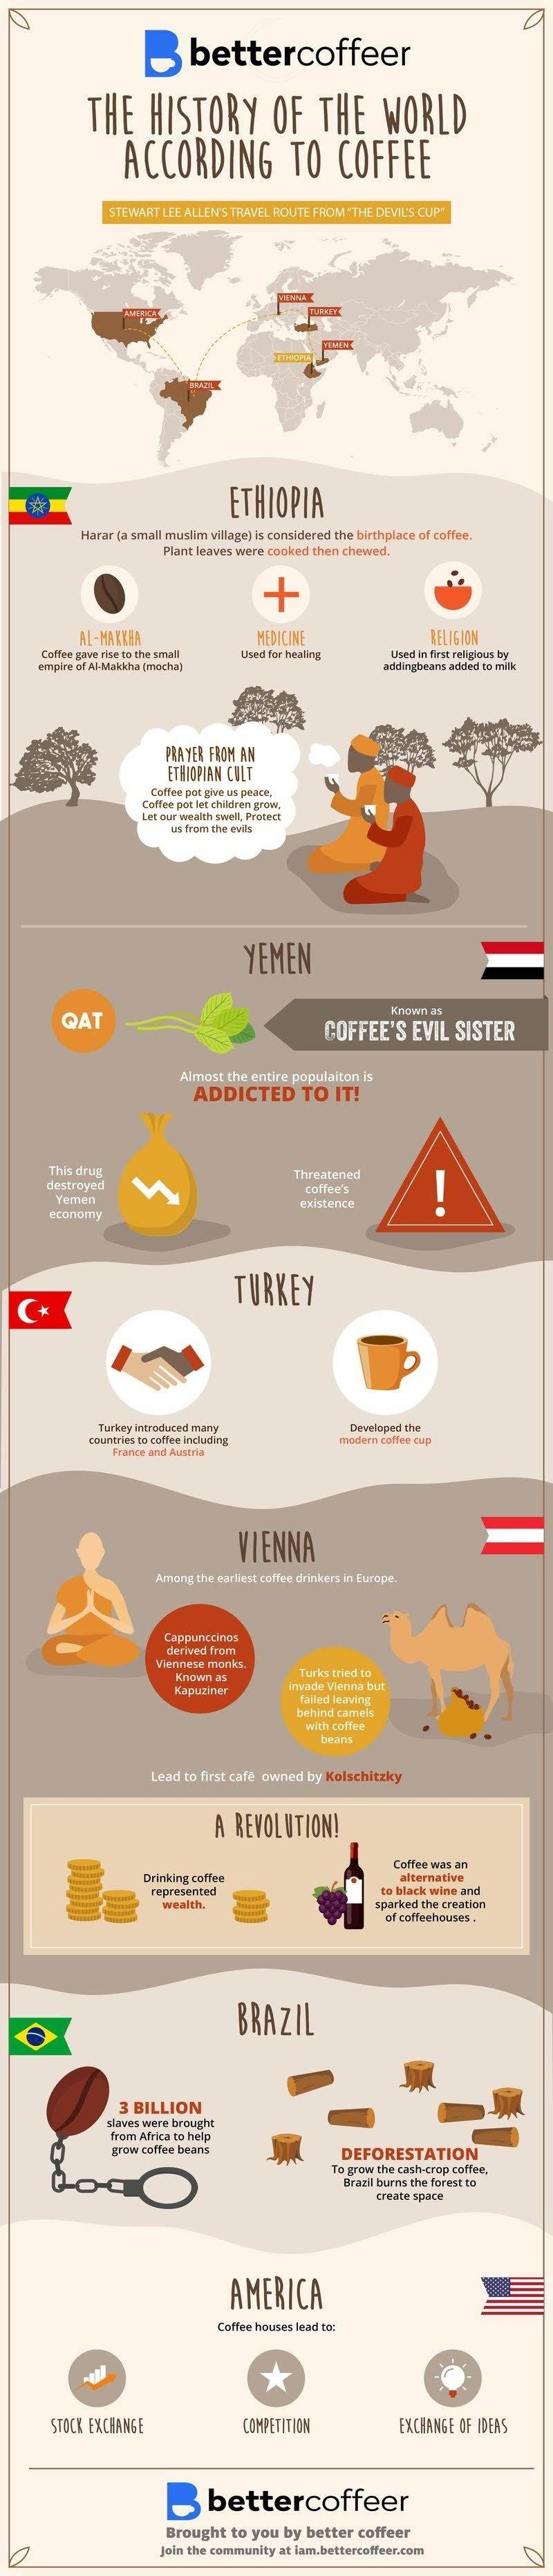 The History of the World According to Coffee #infographic